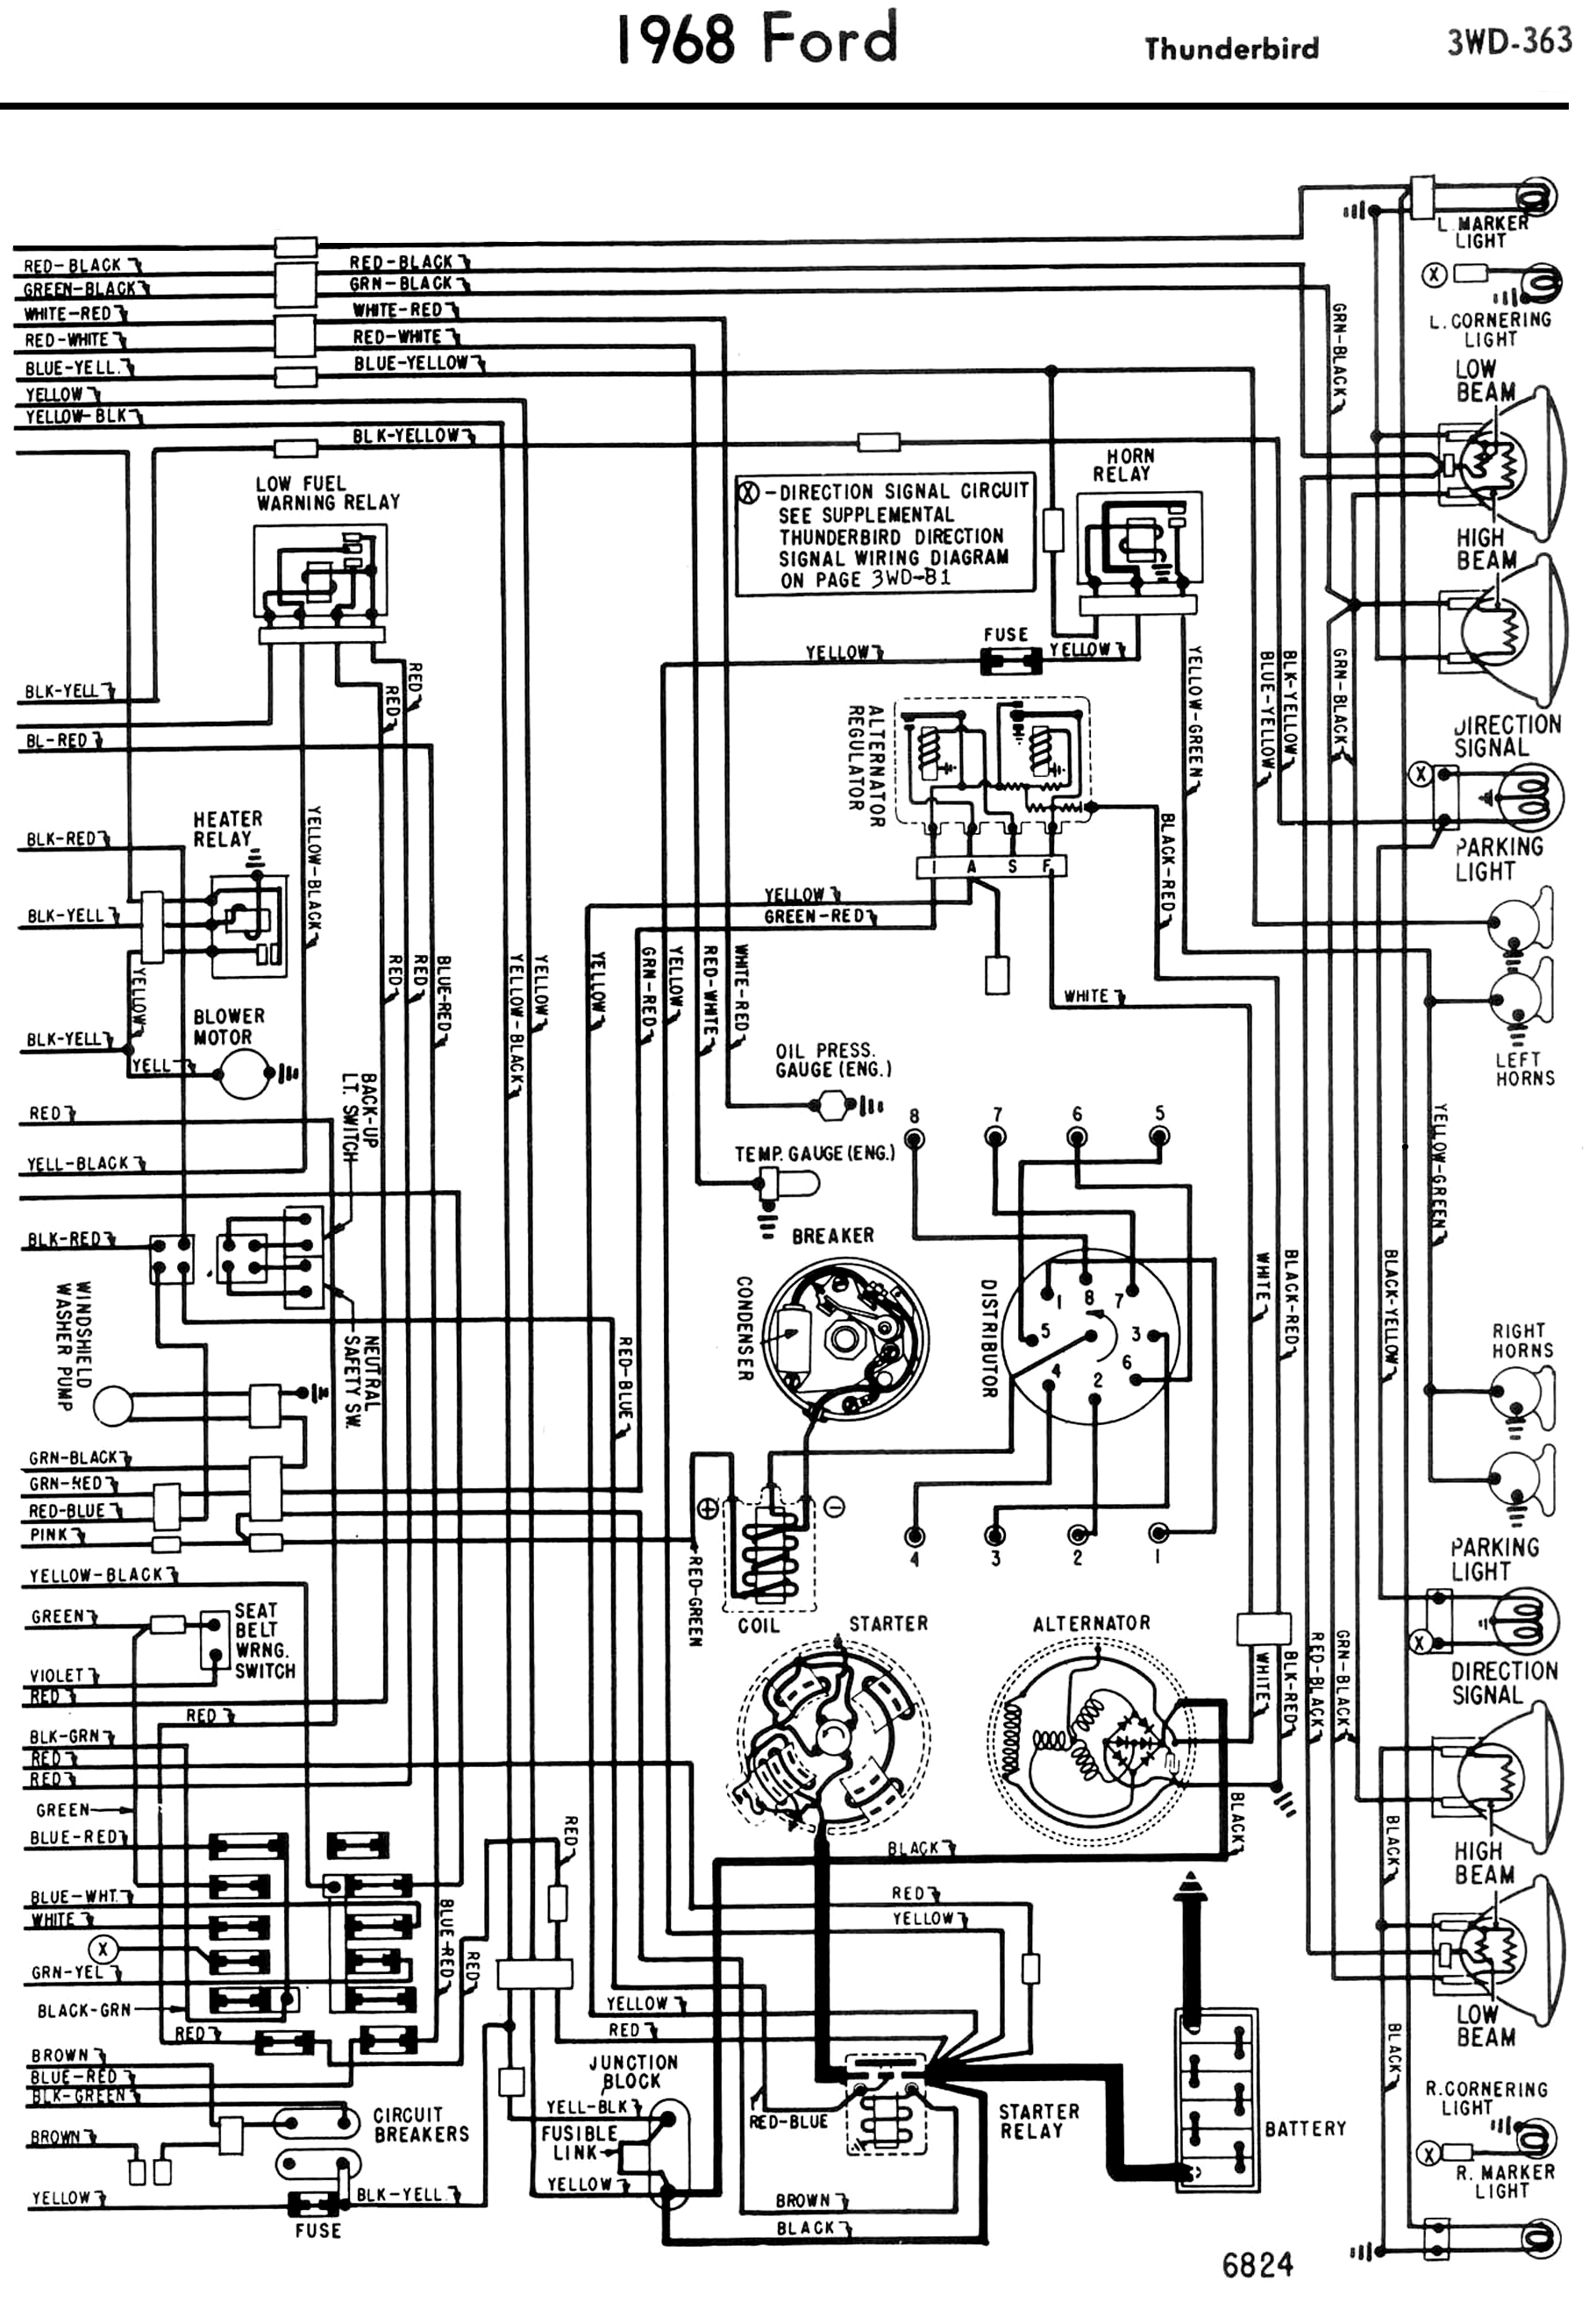 1958 68 Ford Electrical Schematics 1962 Thunderbird Generator Light Wiring  Diagram Wiring Diagram For 2003 Ford Thunderbird